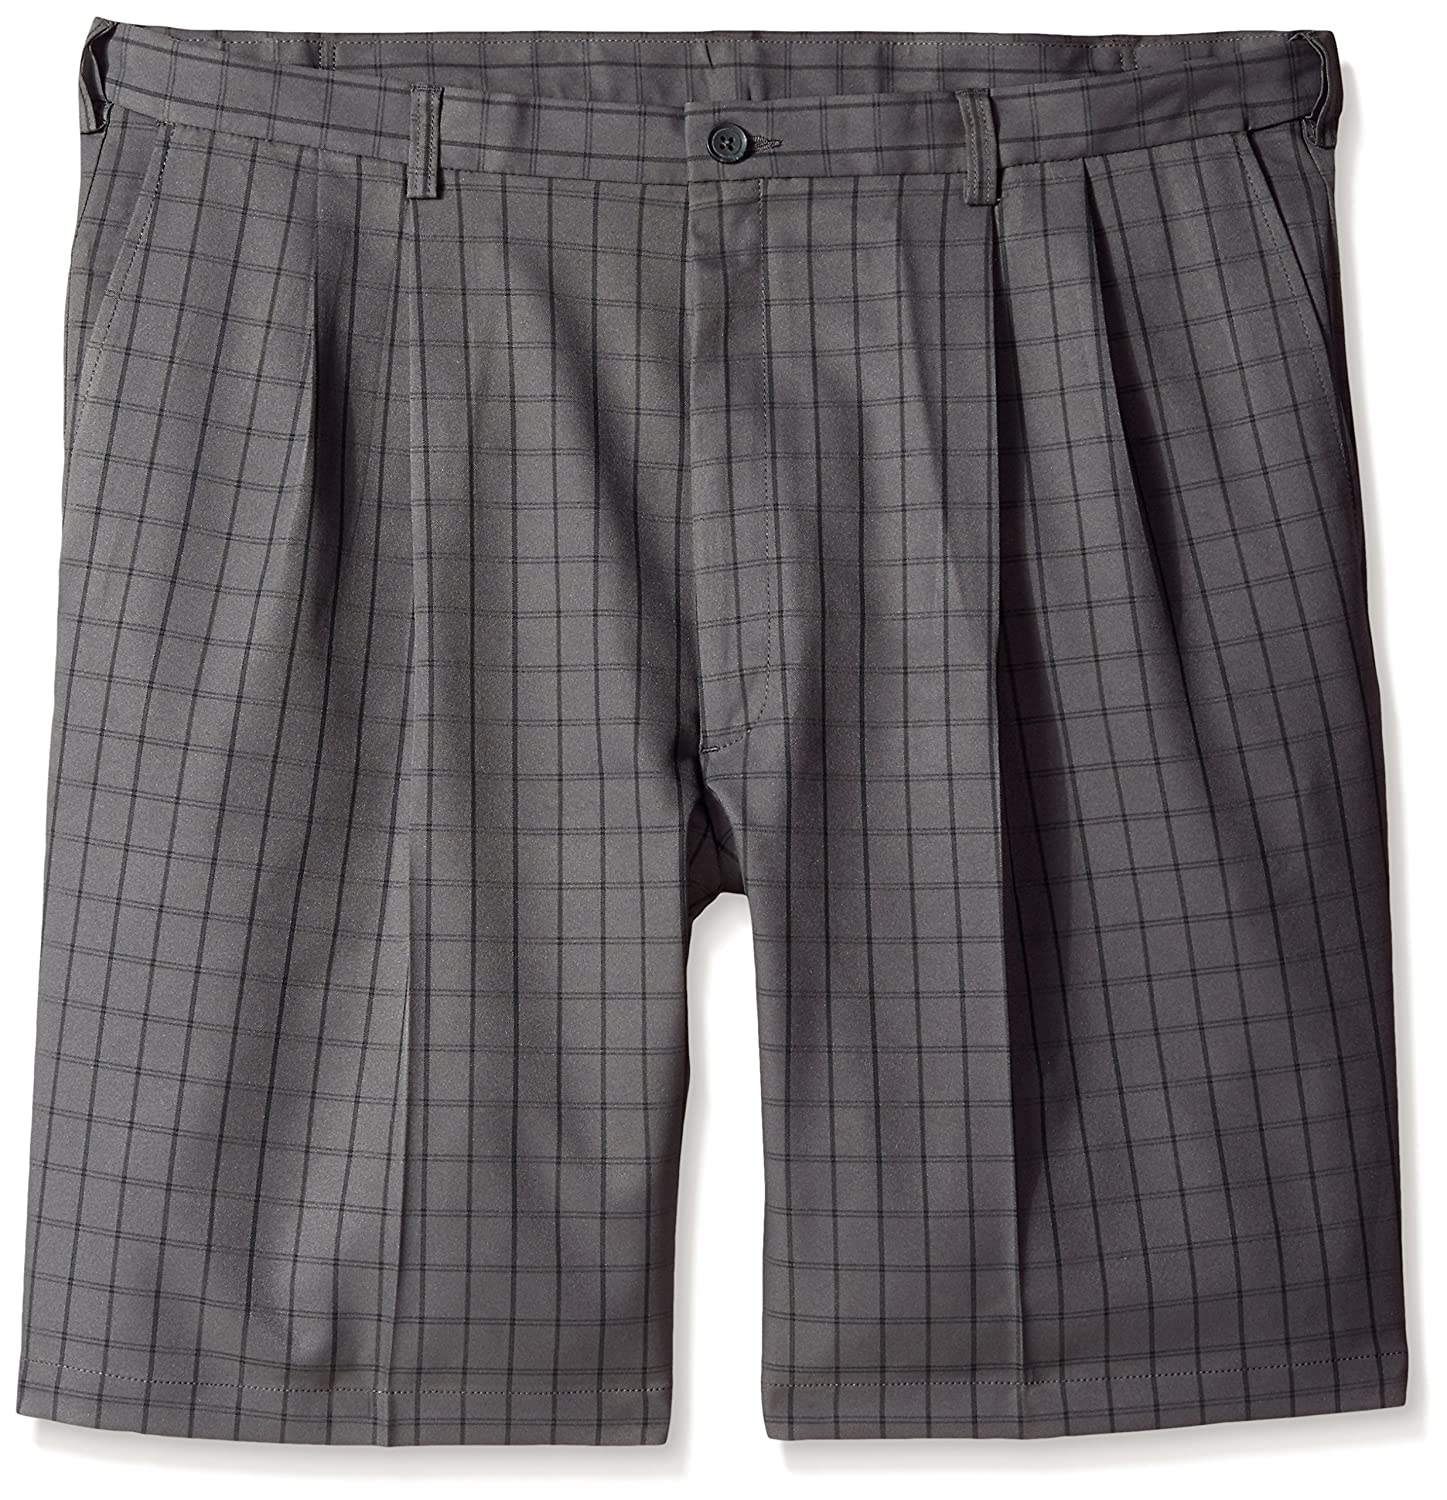 Haggar Men's Big-Tall Cool 18 Graphic Windowpane Pleat Front Short Charcoal 44W Haggar Men's Bottoms HS90371